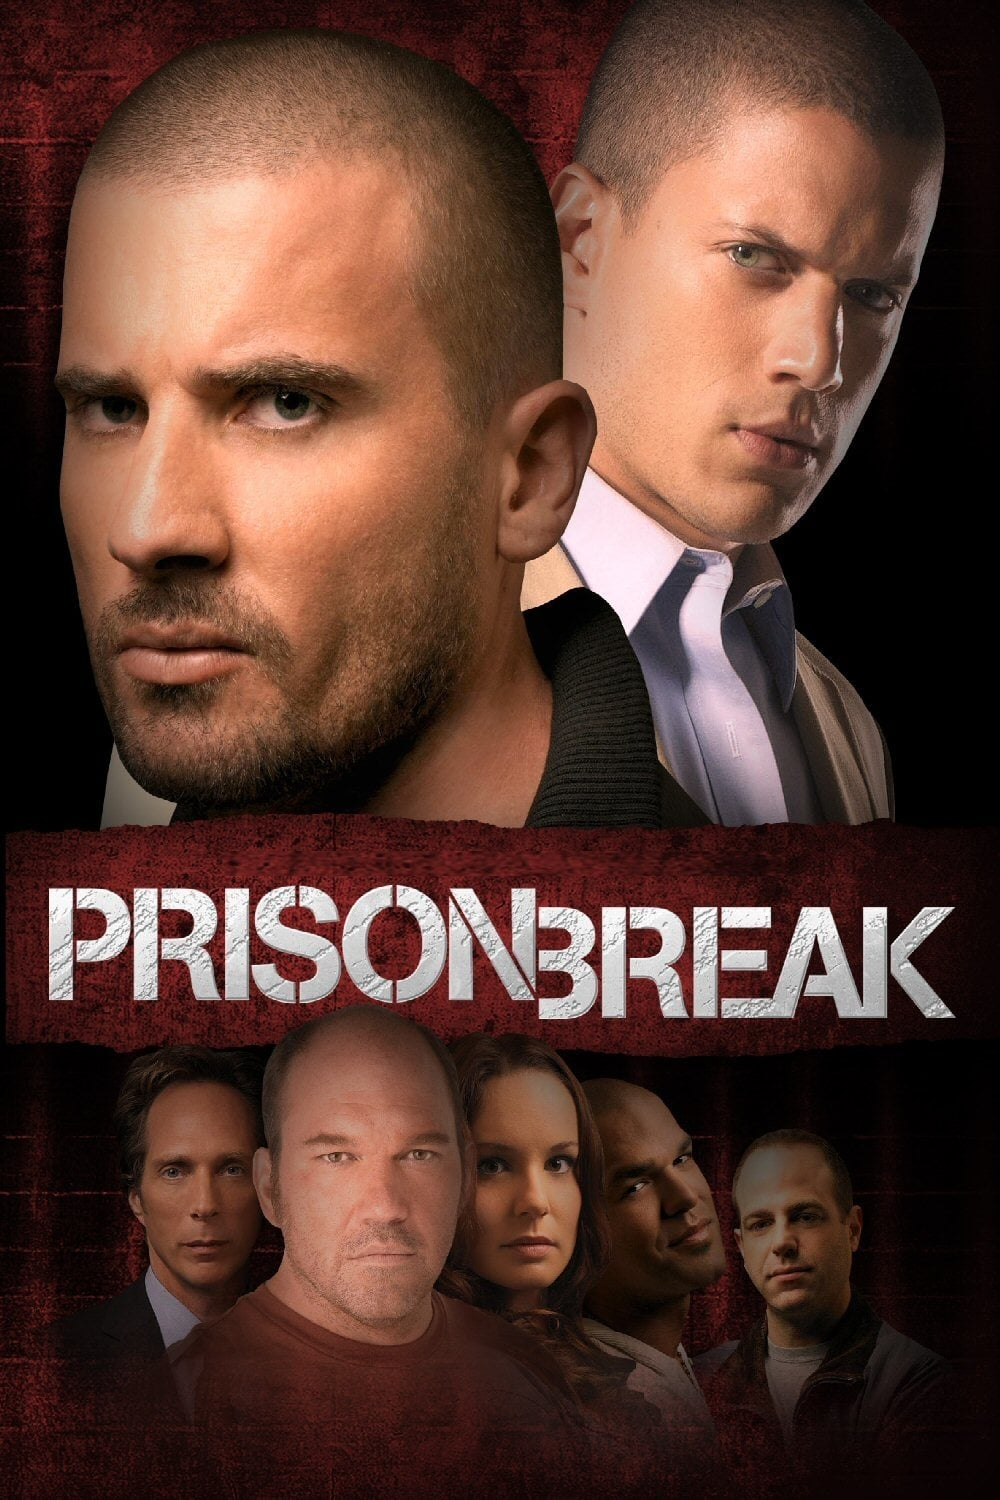 prison break serie tv 2005. Black Bedroom Furniture Sets. Home Design Ideas